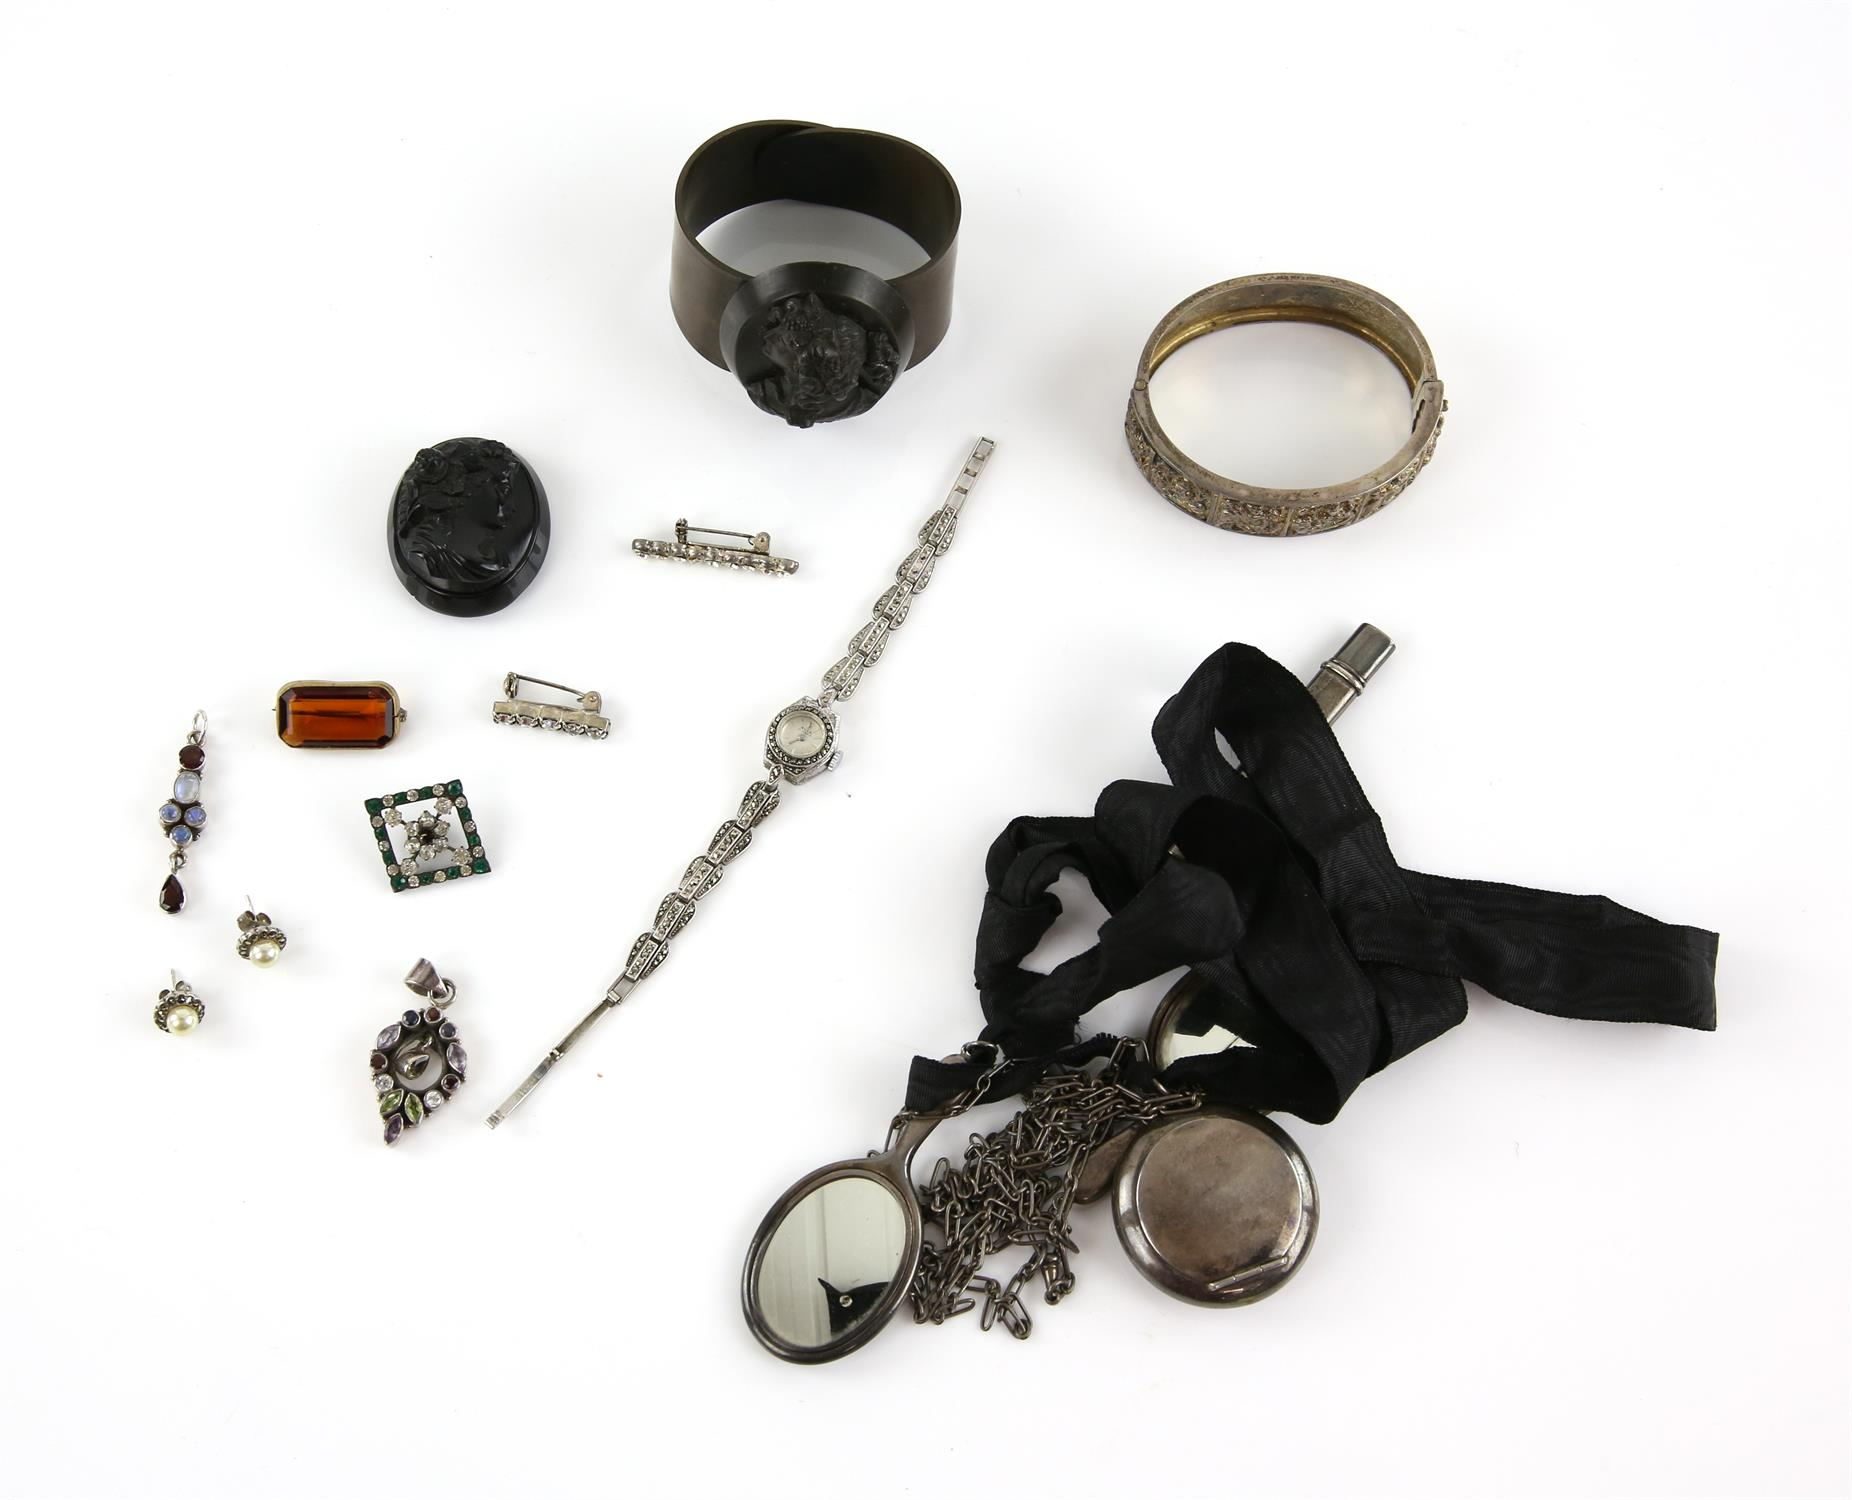 A group of silver items, including bangles, pencil in a silver case, powder compact and small